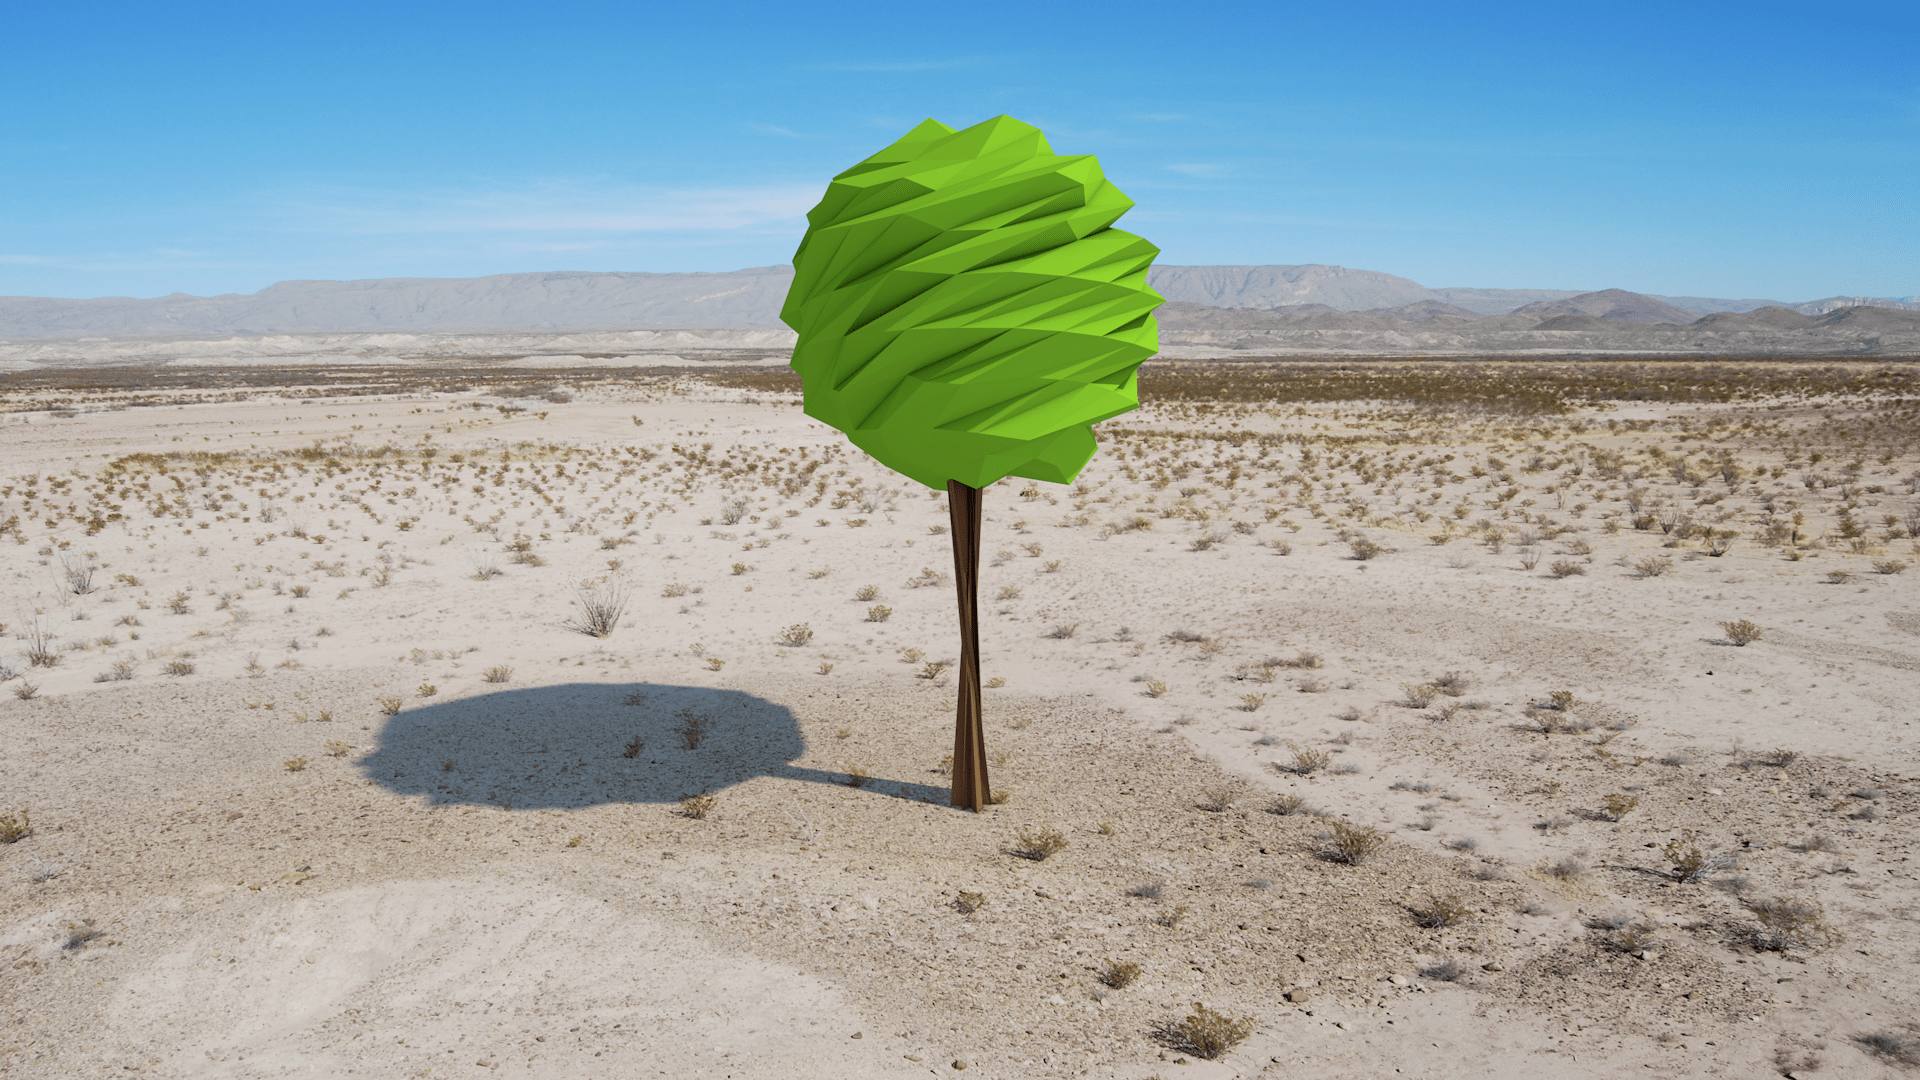 Wallpaper Landscape Sand Low Poly Desert Valley